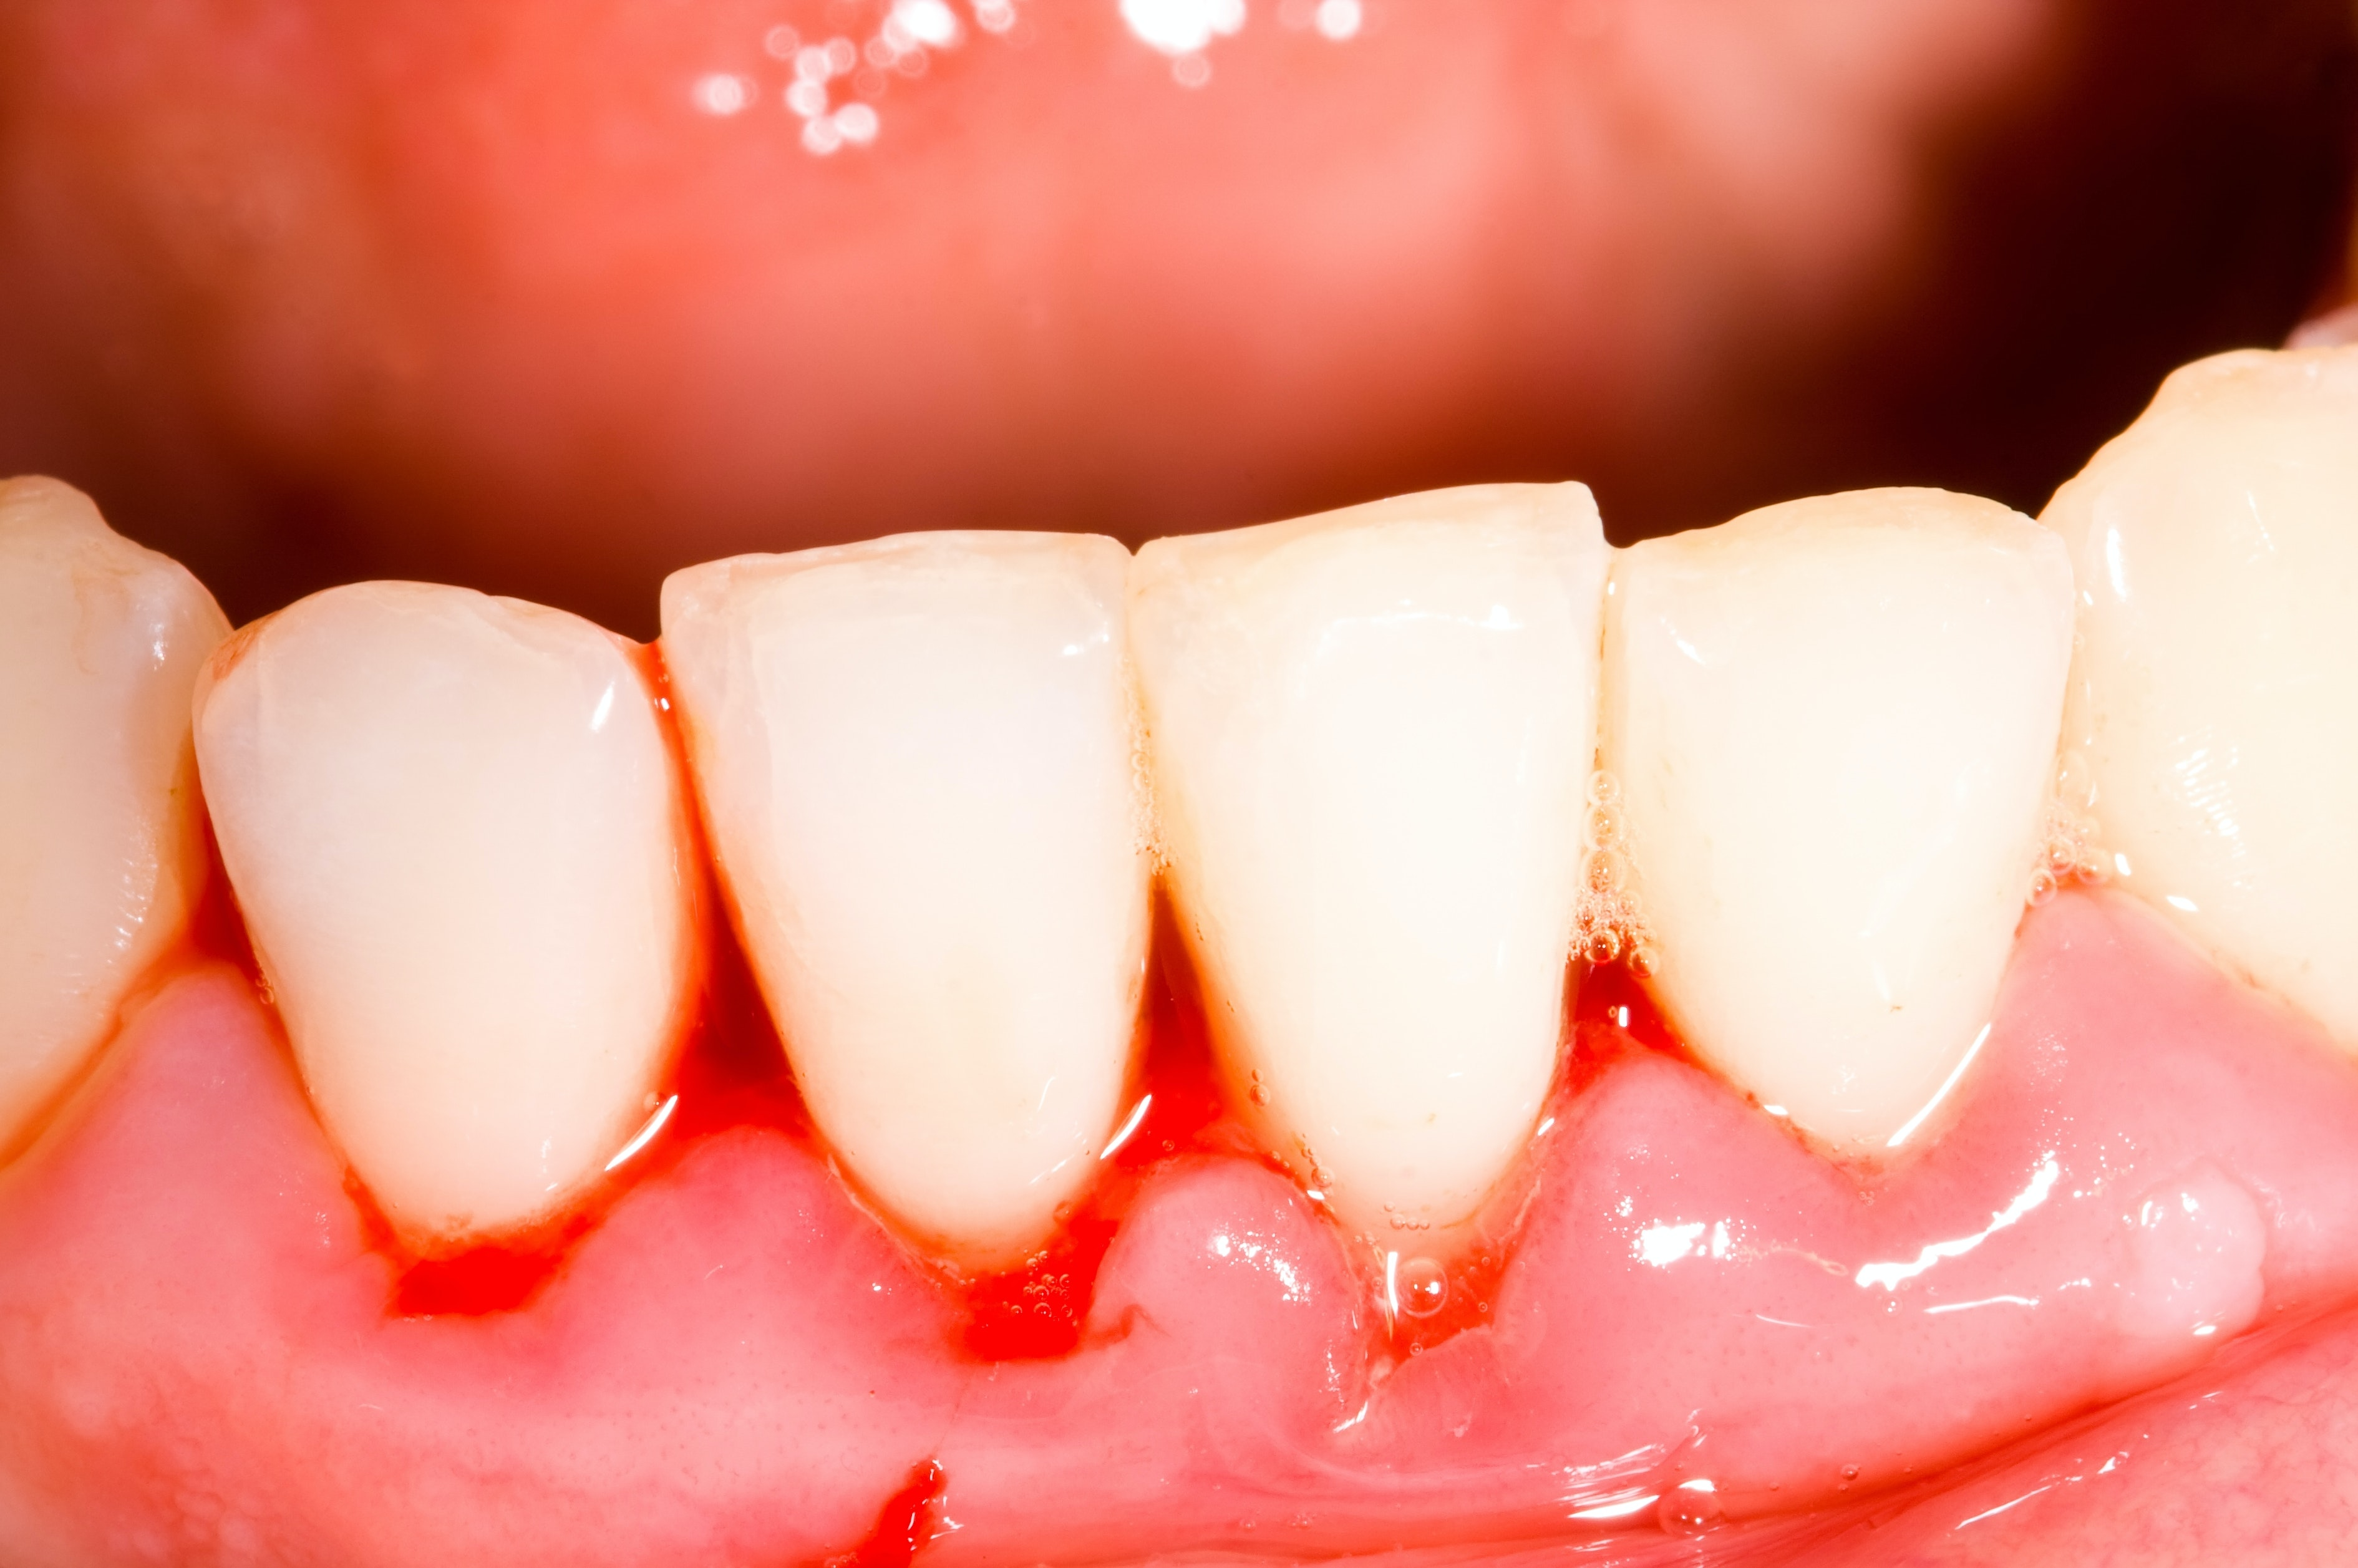 An image depicting a person suffering from gingivitis symptoms